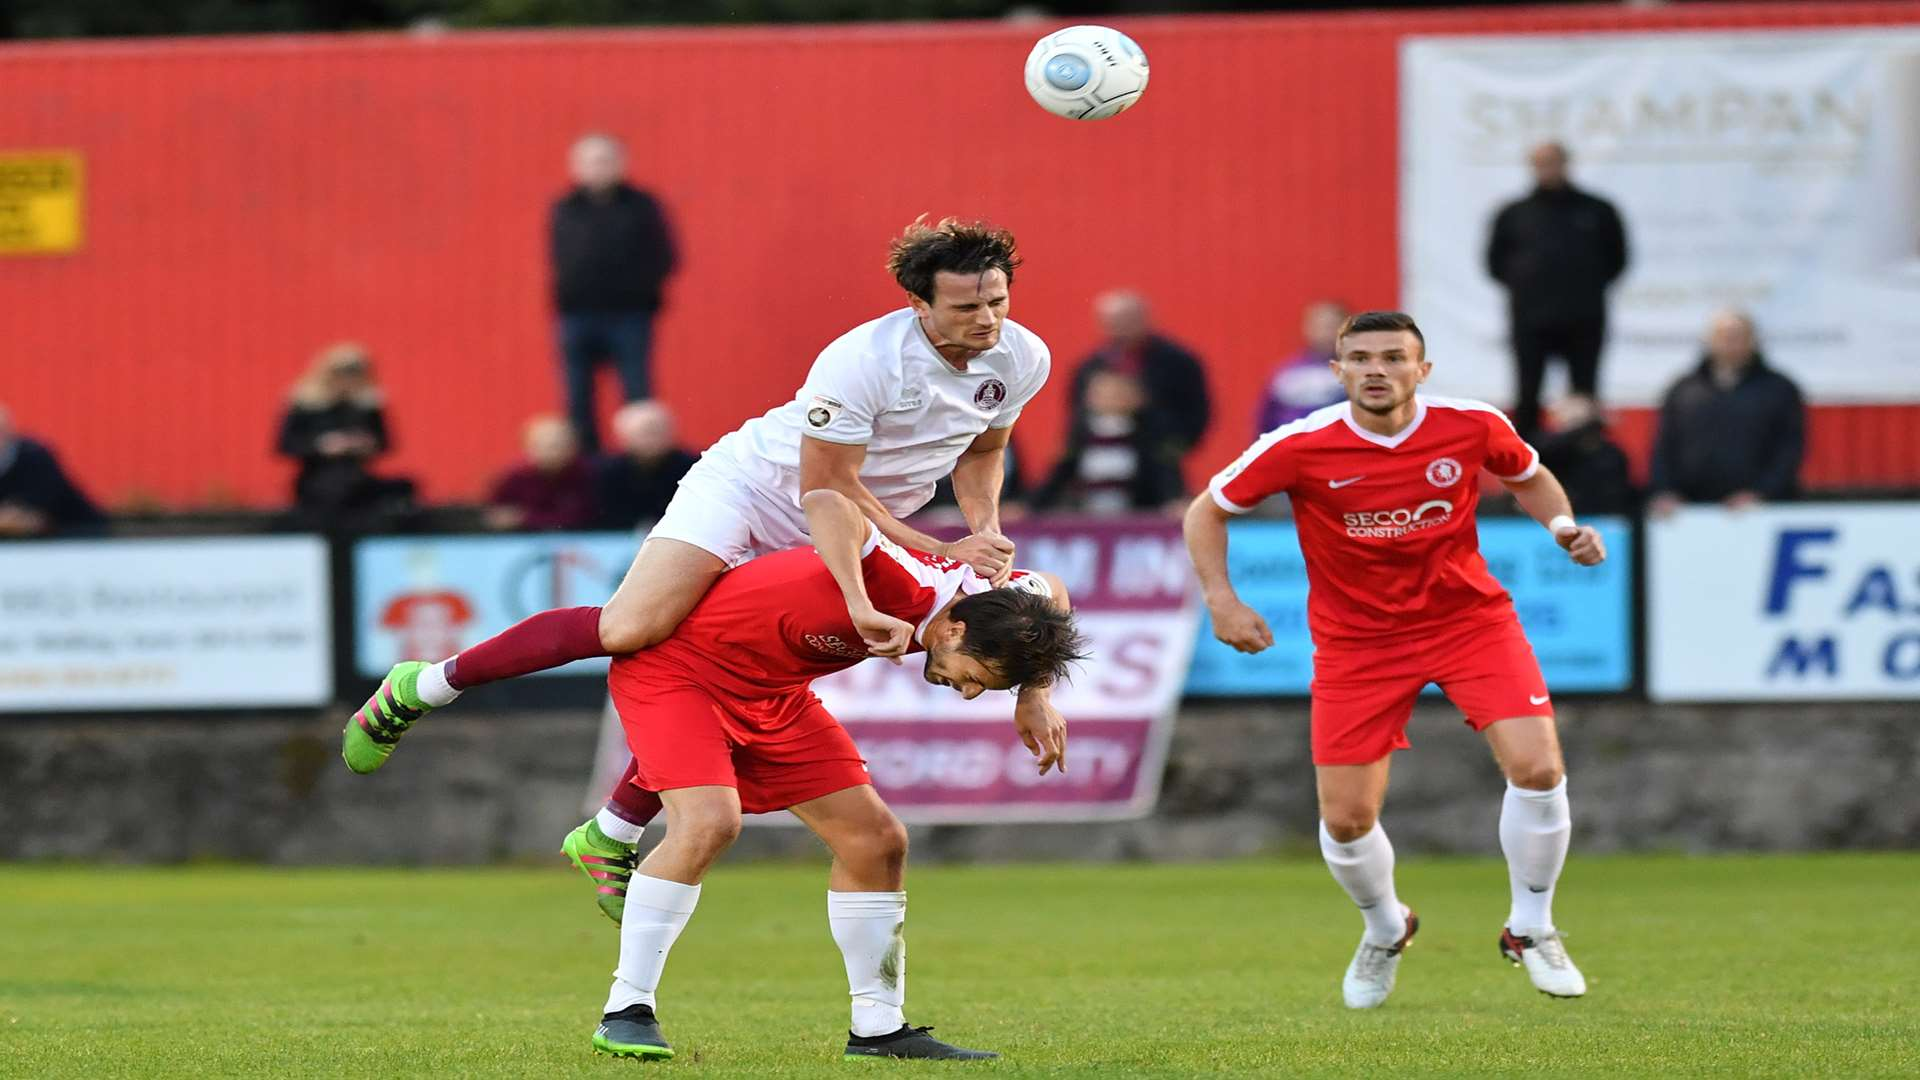 Welling midfielder Joe Healy is fouled against Chelmsford. Picture: Keith Gillard